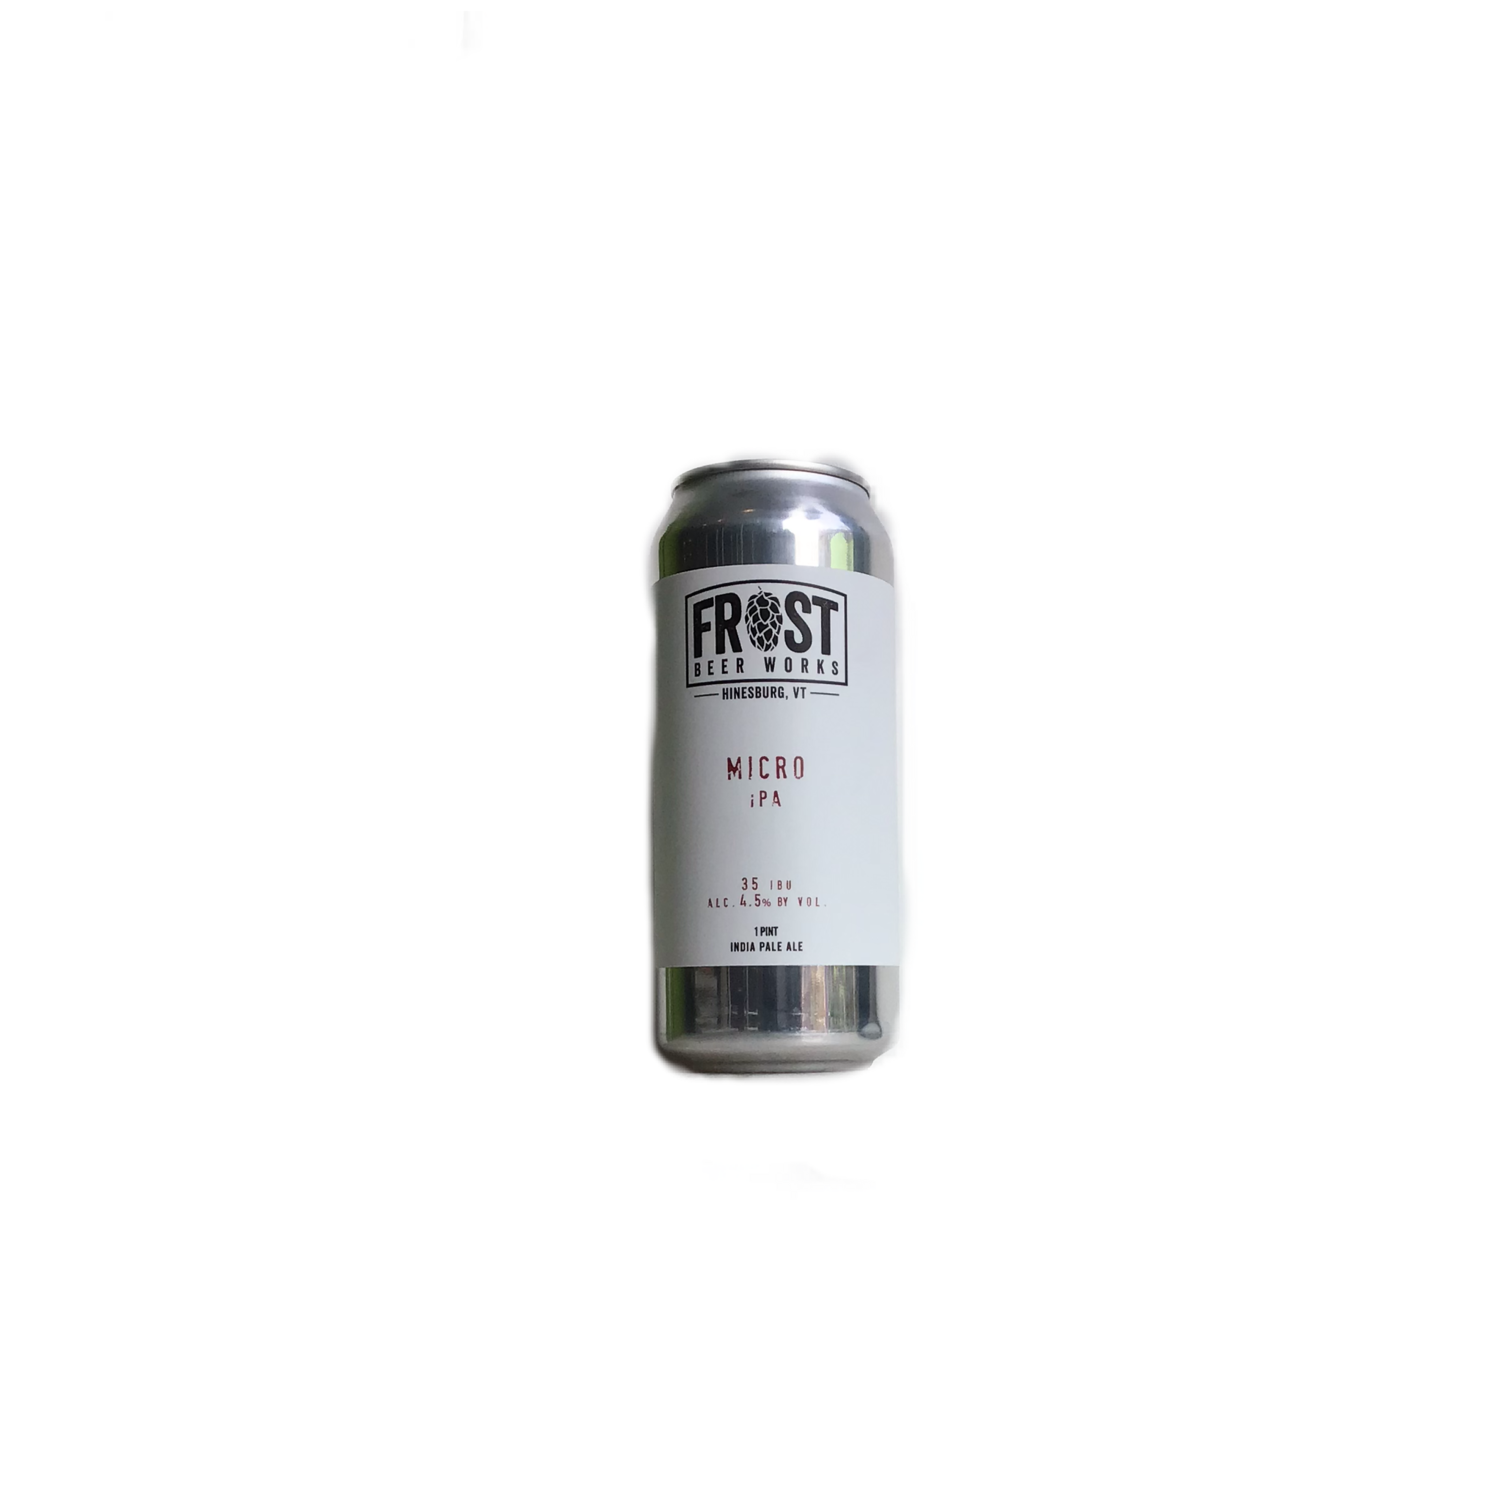 Frost Beer Works Micro IPA